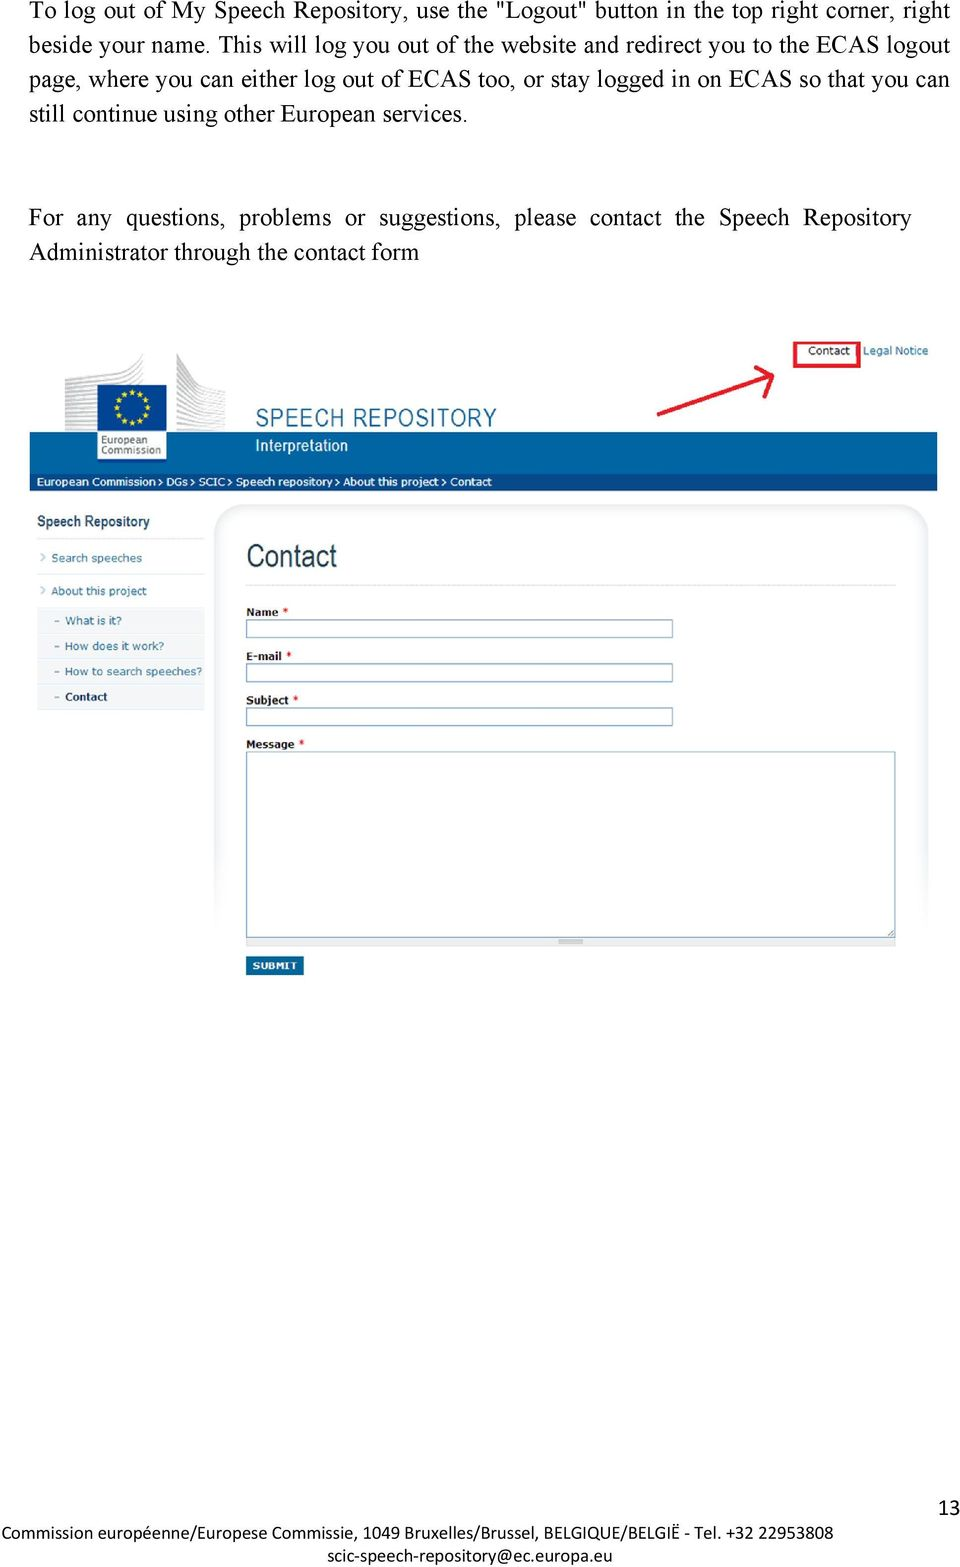 of ECAS too, or stay logged in on ECAS so that you can still continue using other European services.